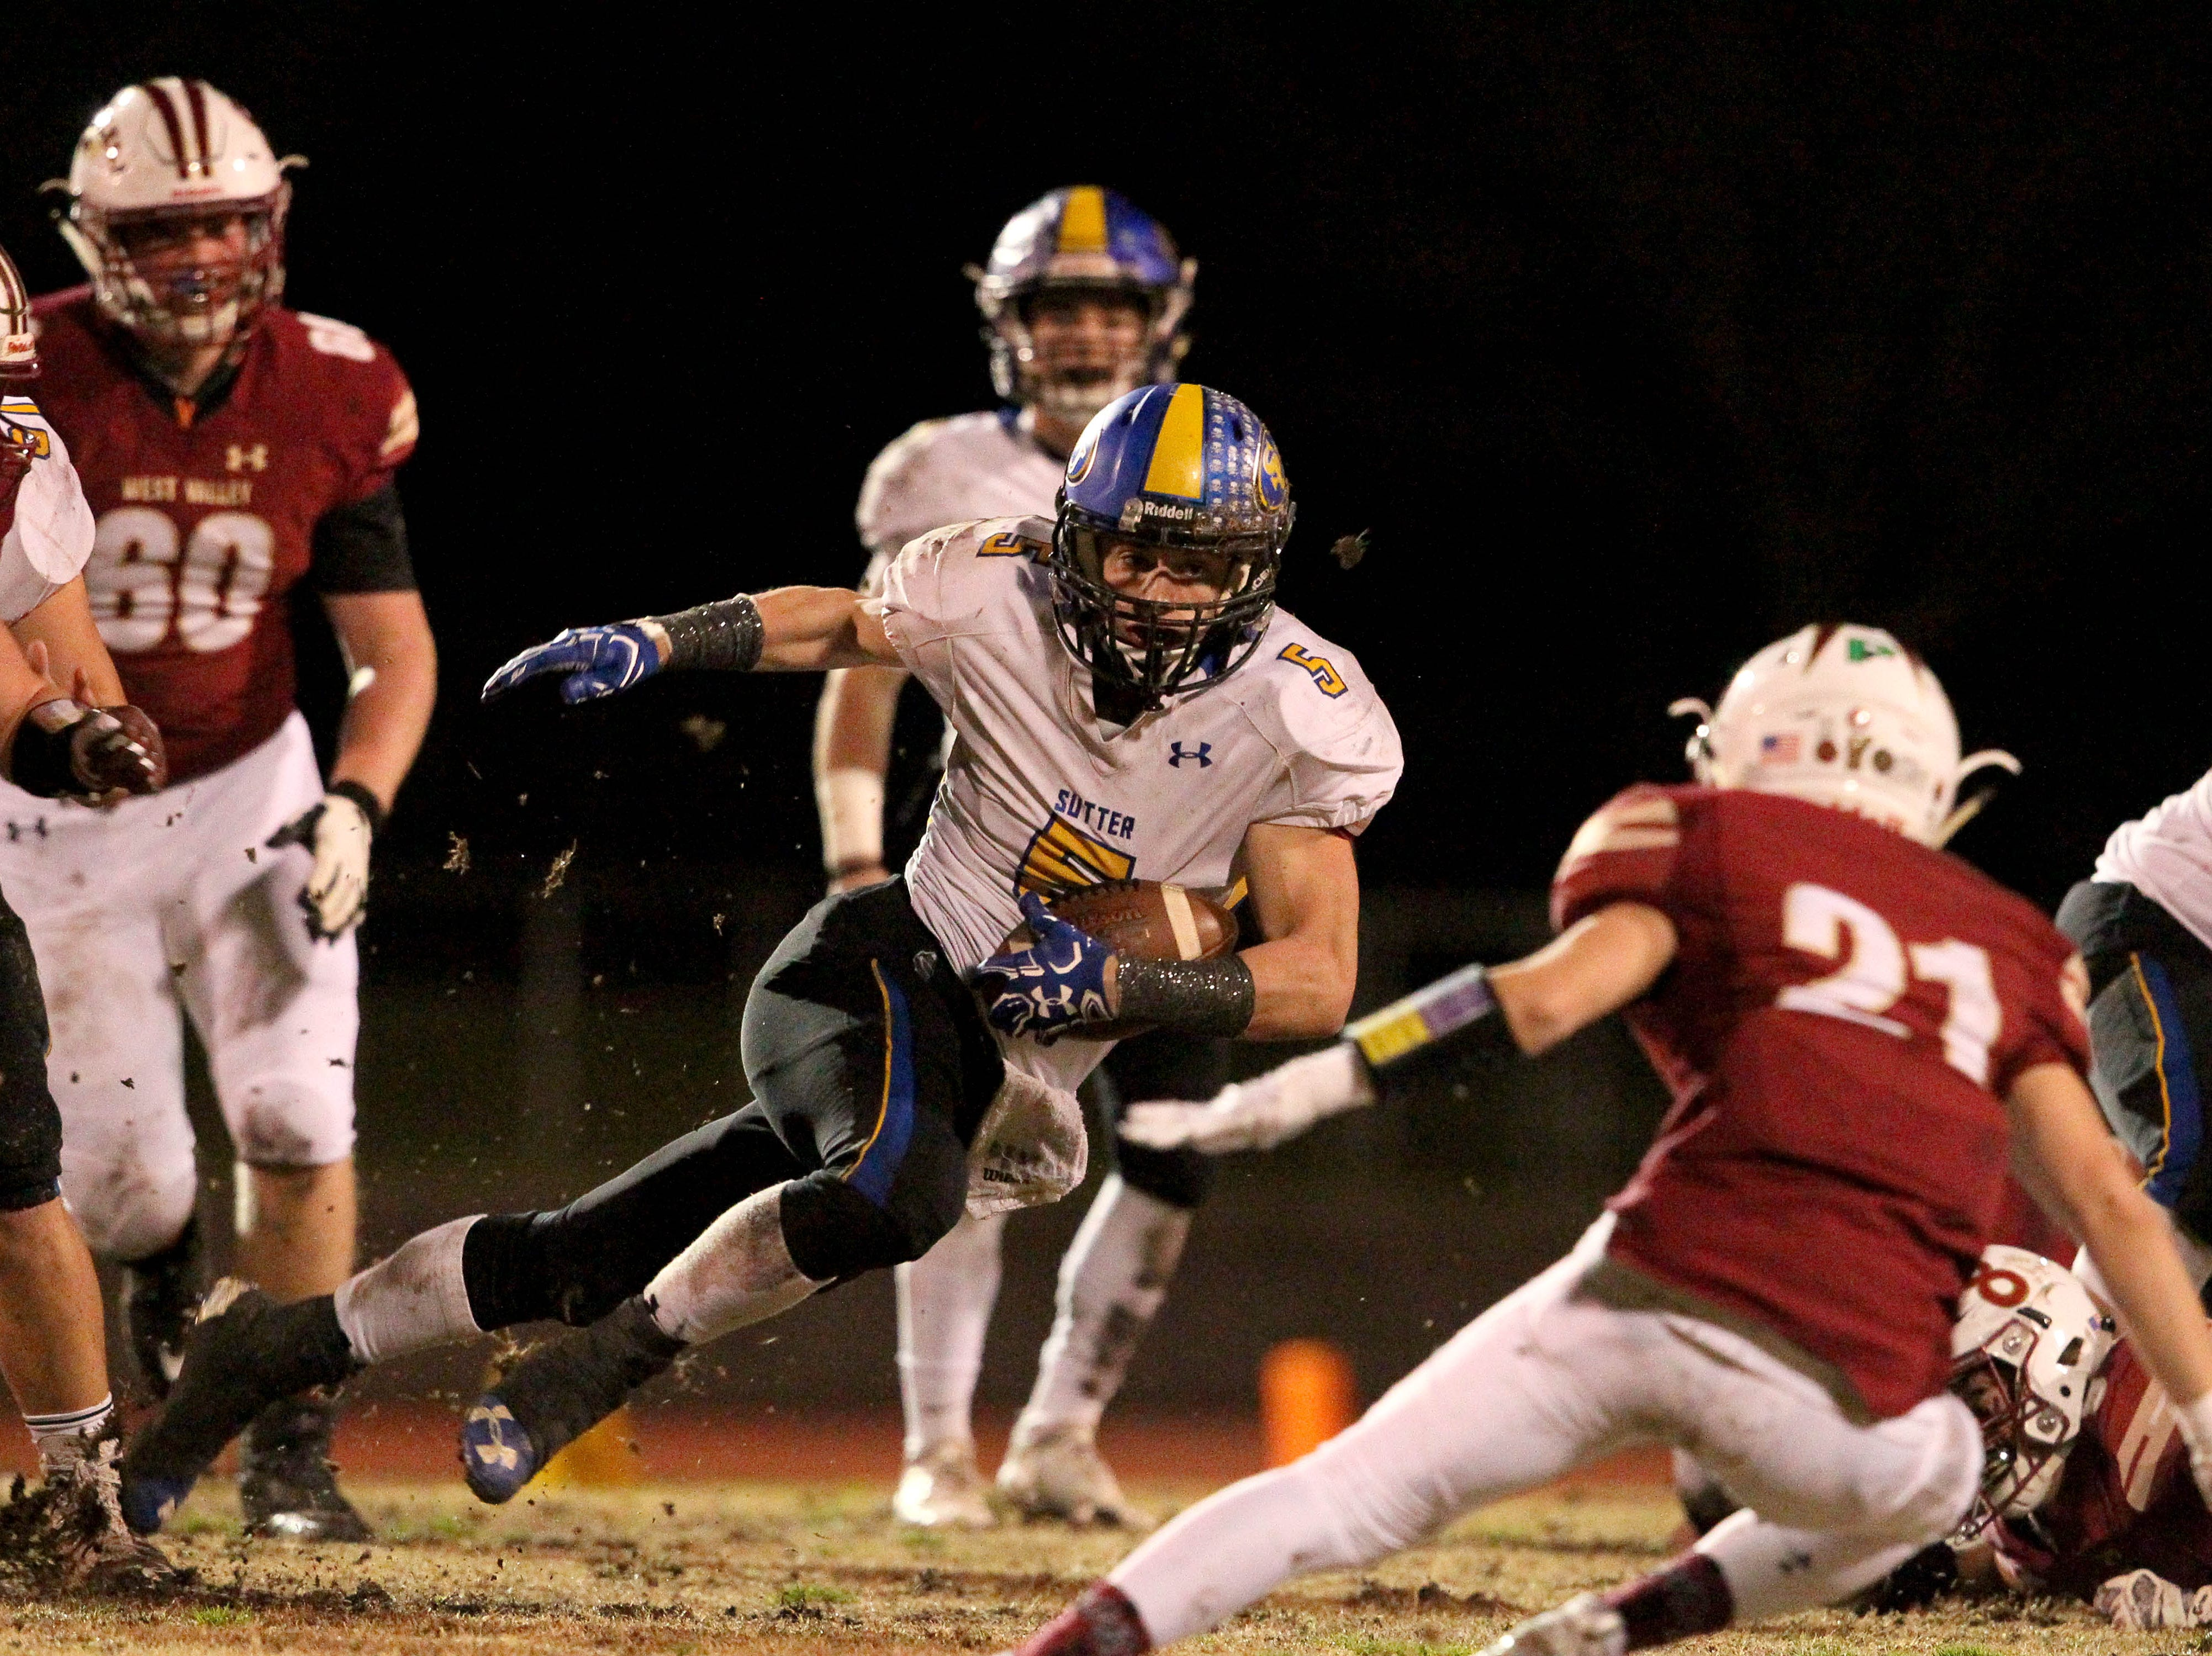 Sutter's Colton Dillabo (5) looks for open to run for a first down in the 2nd quarter against West Valley.